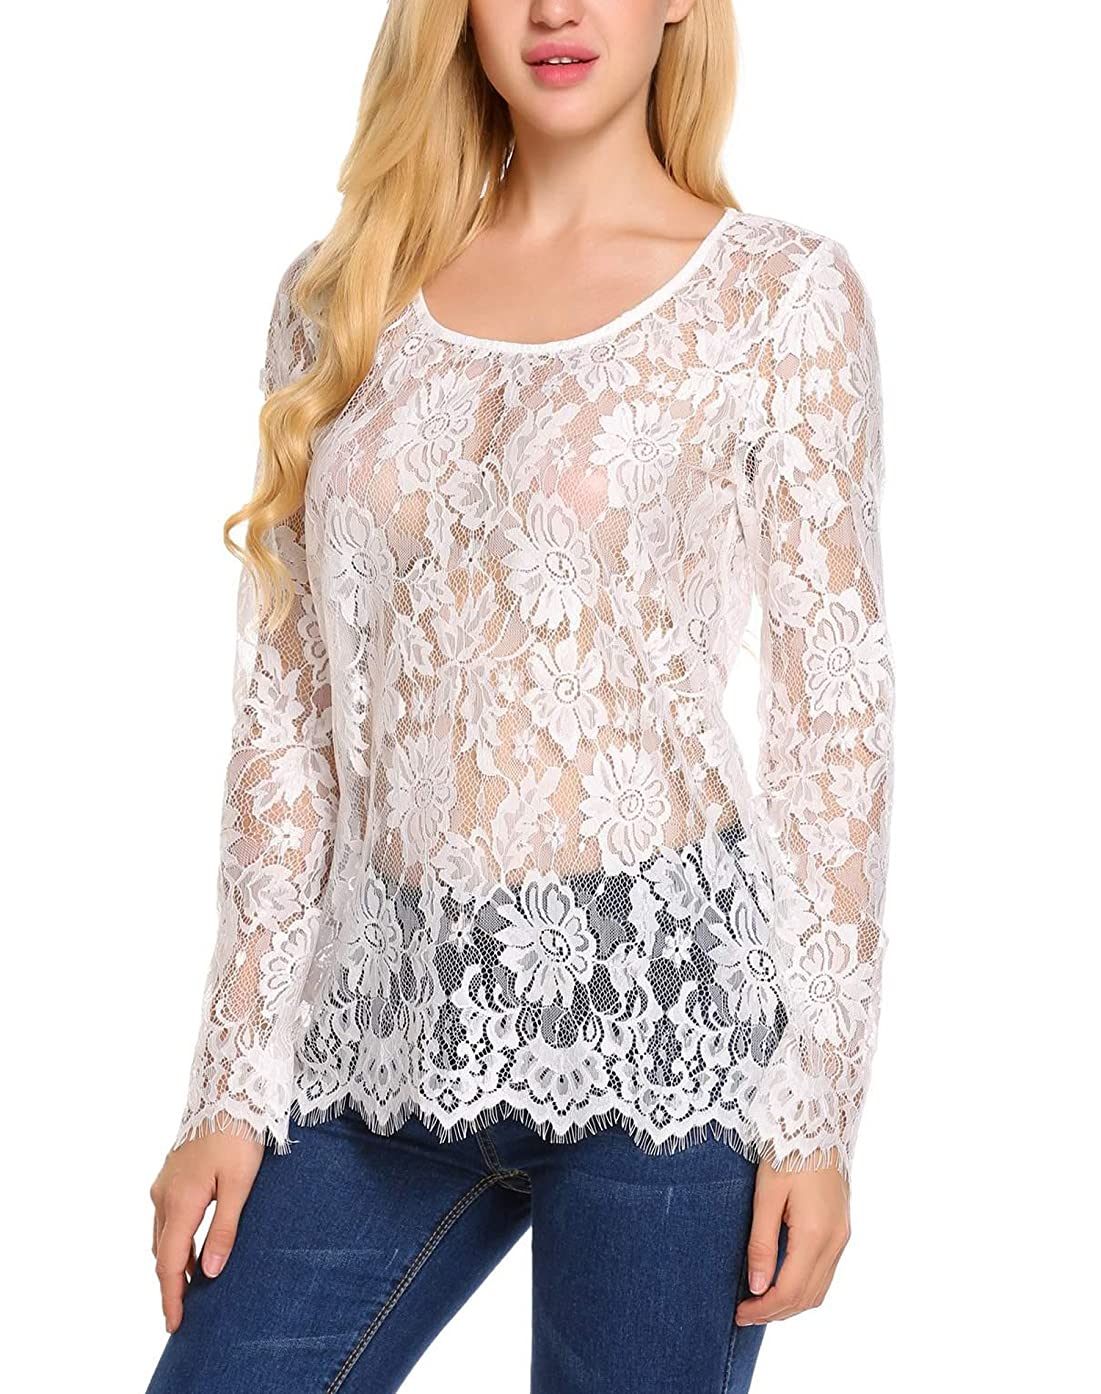 Zeagoo Women's Long Sleeve Sexy Sheer Floral Lace Blouse Top S-3XL